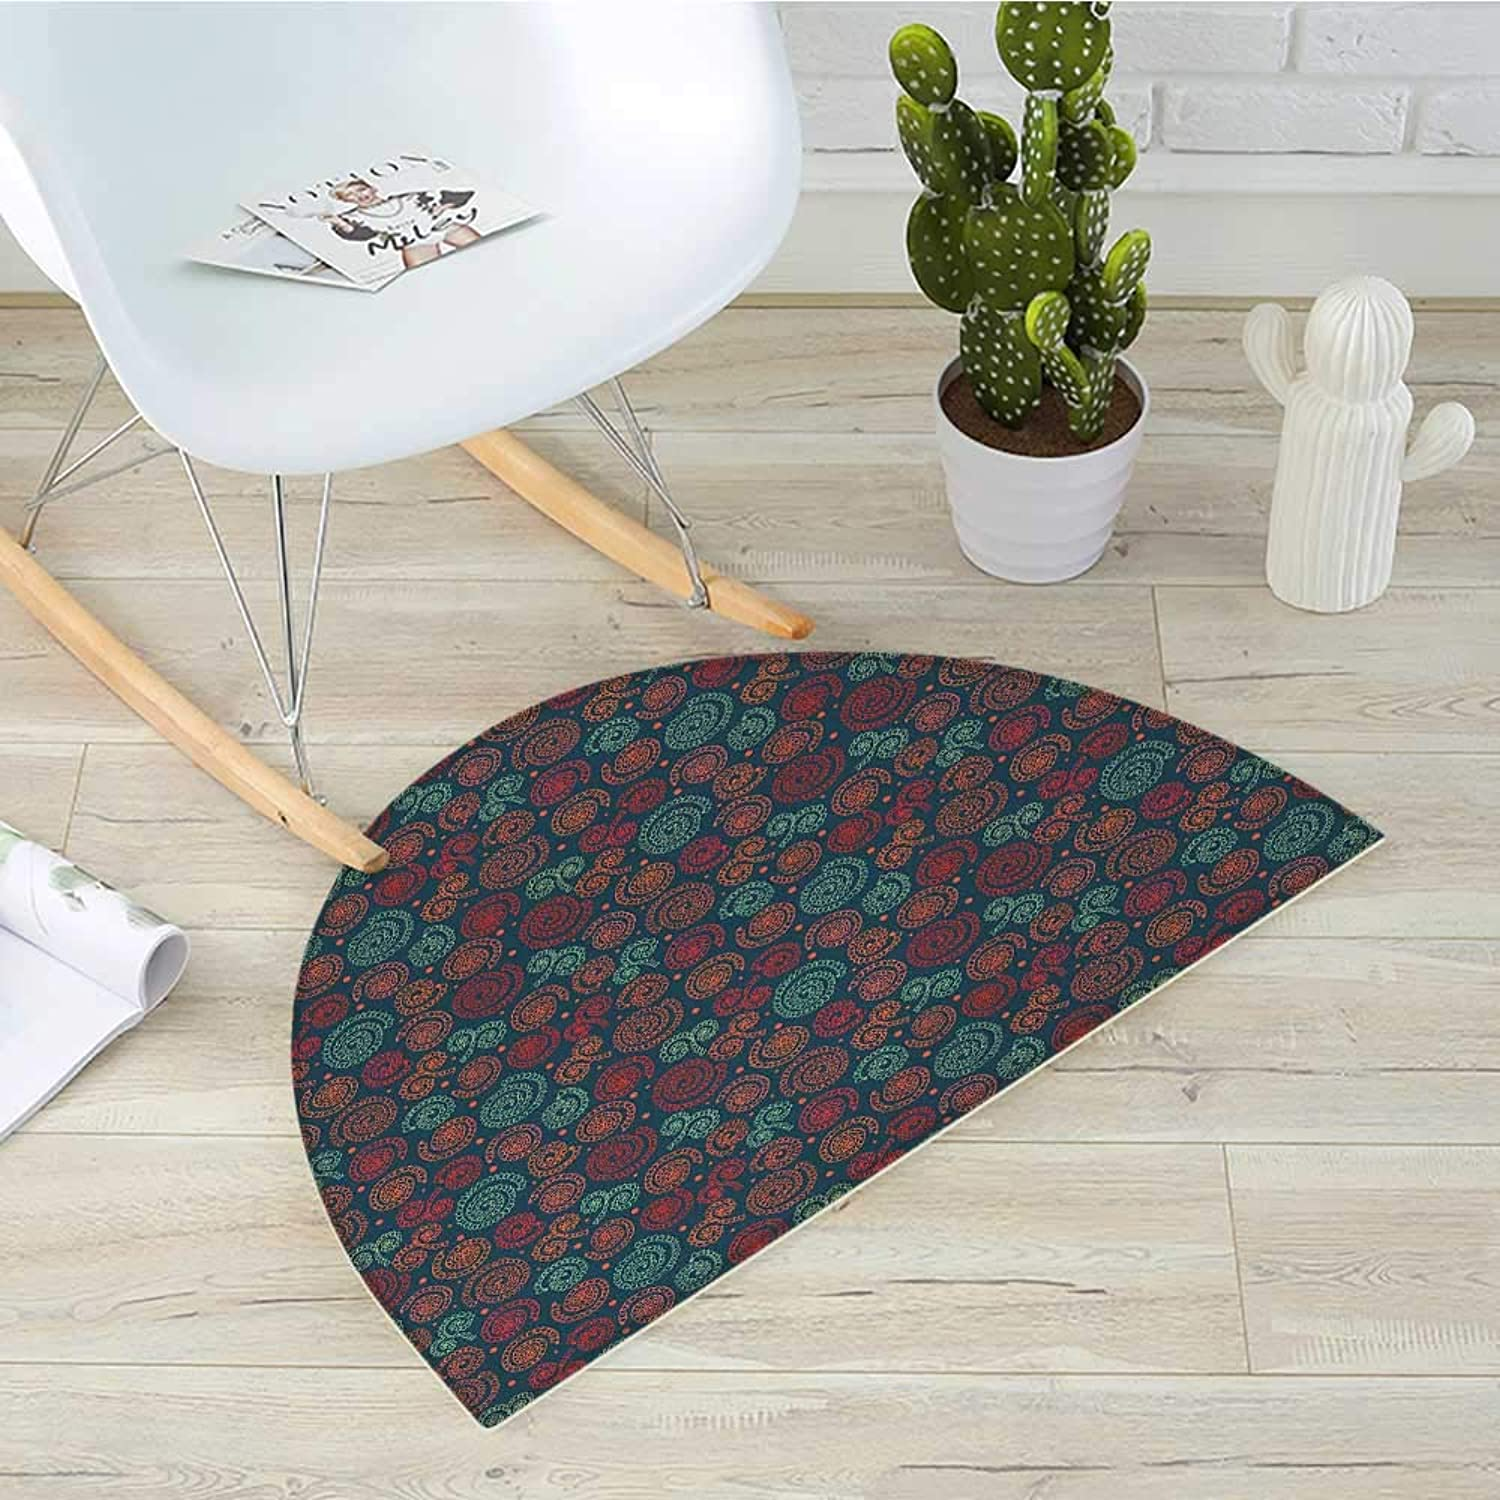 Ethnic Semicircle Doormat Abstract Floral Spiral Motifs in Lace Style with National Elements Doodle Ornaments Halfmoon doormats H 39.3  xD 59  Multicolor